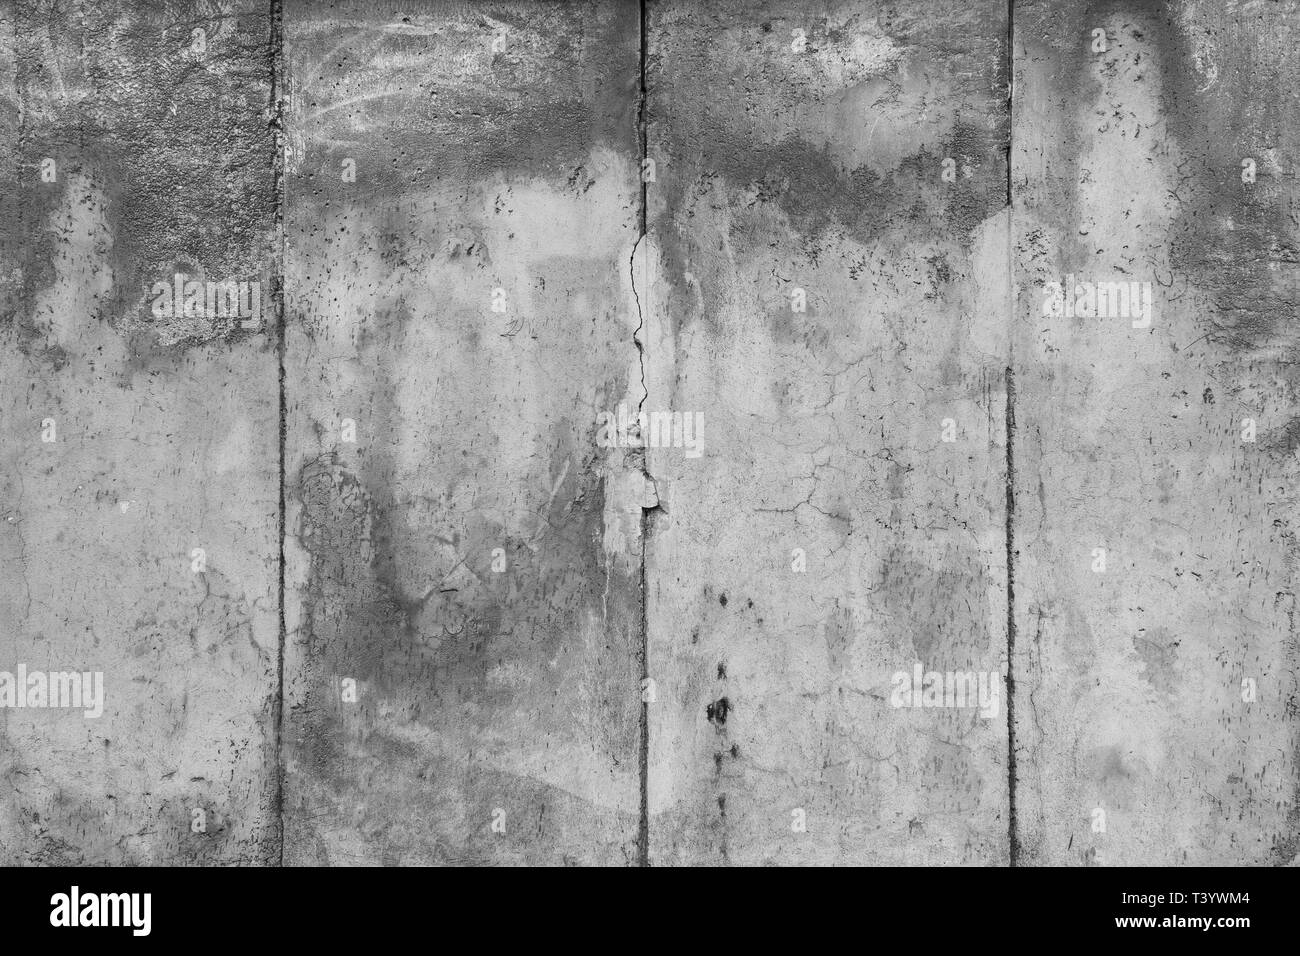 Close Up Of A Weathered And Aged Concrete Wall In Black And